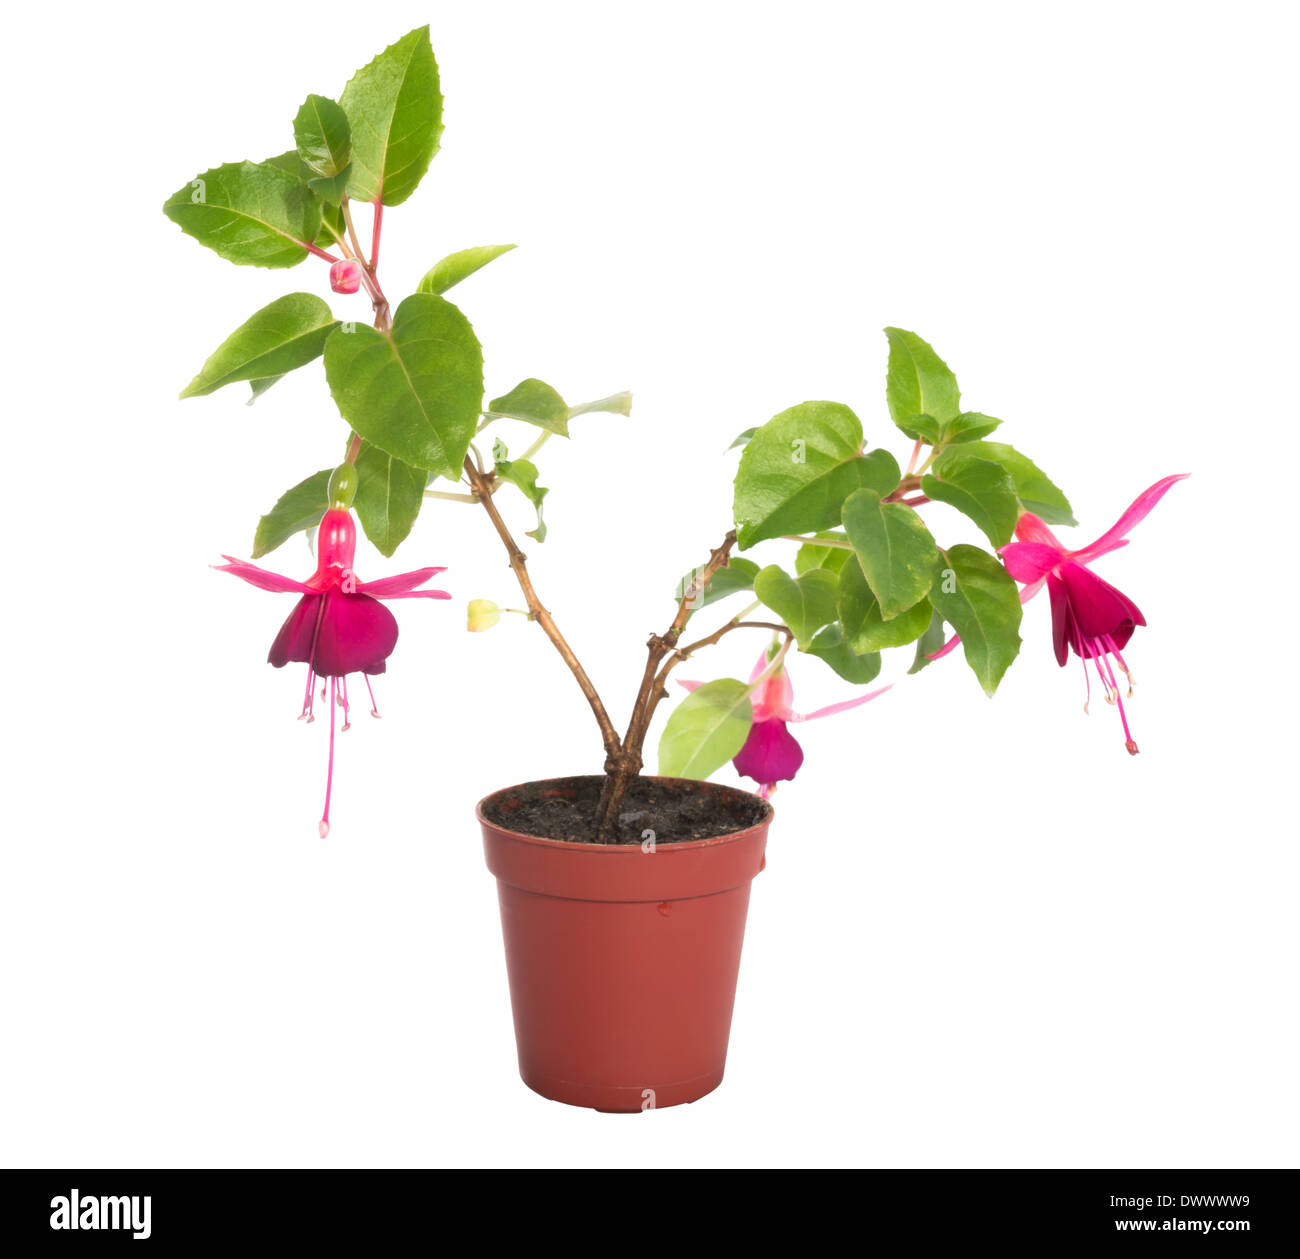 stock photo red fuchsia flower houseplants in flower pot isolated on white background